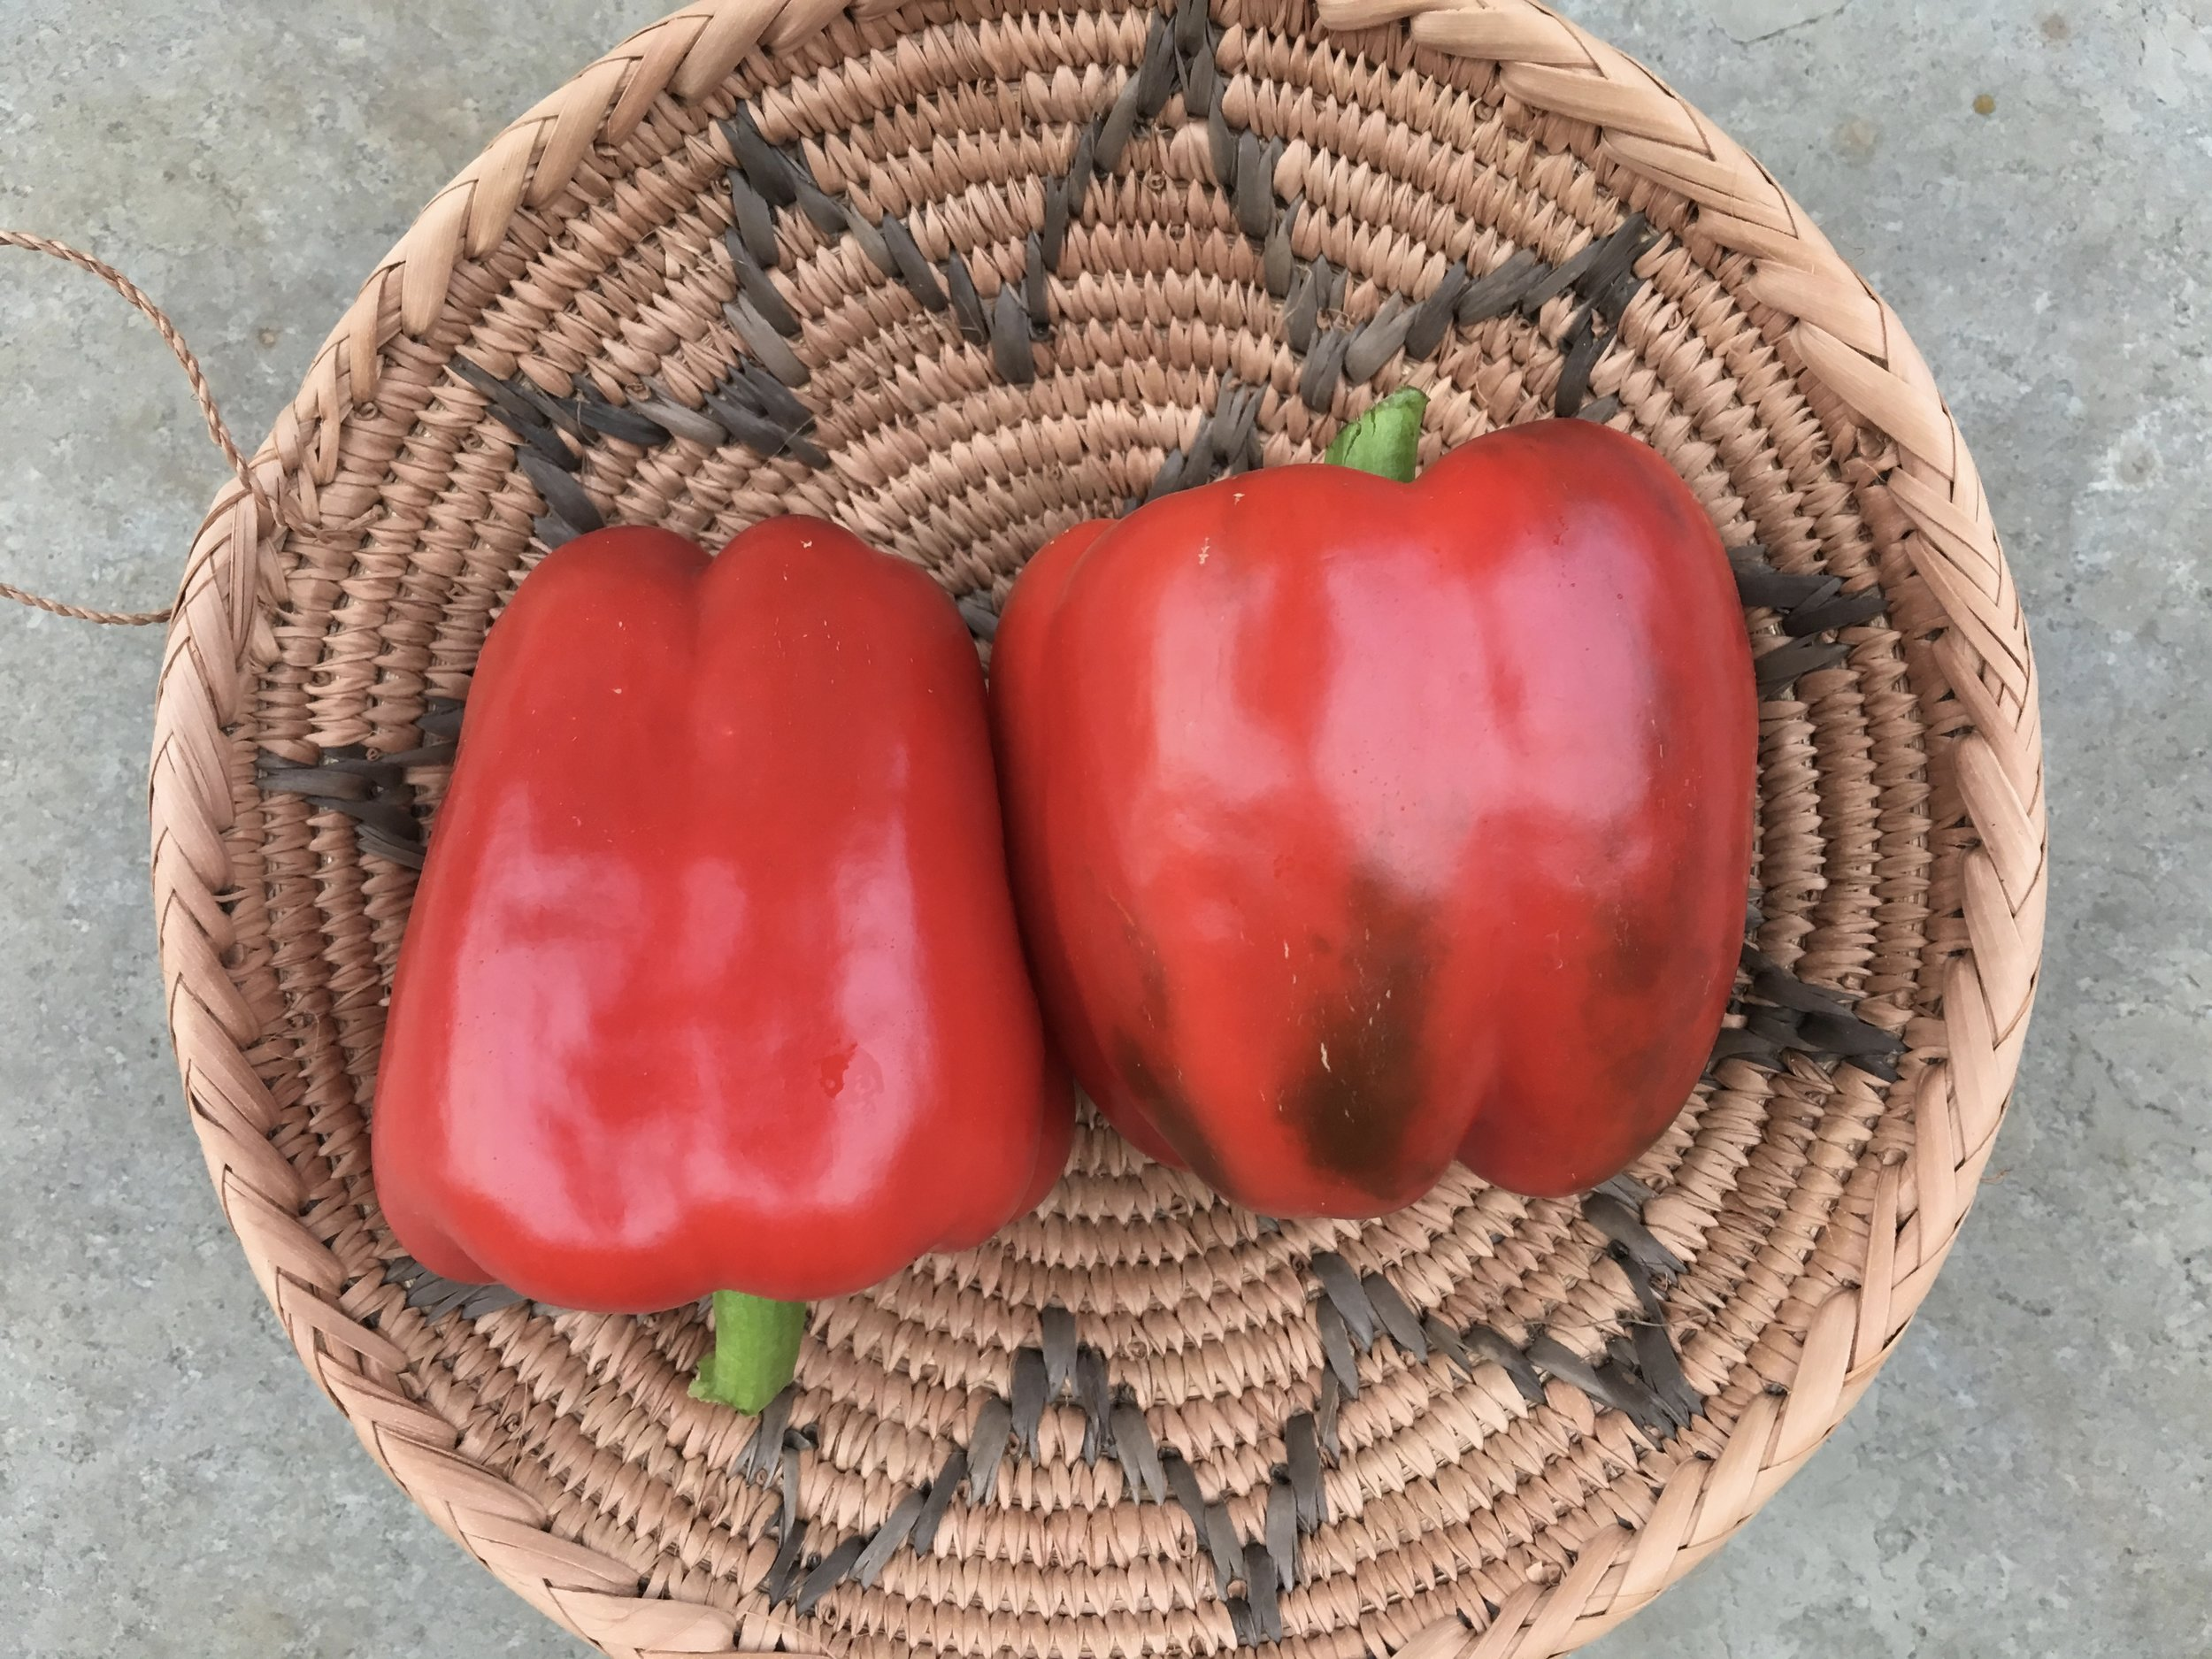 'Red Beauty' red peppers.